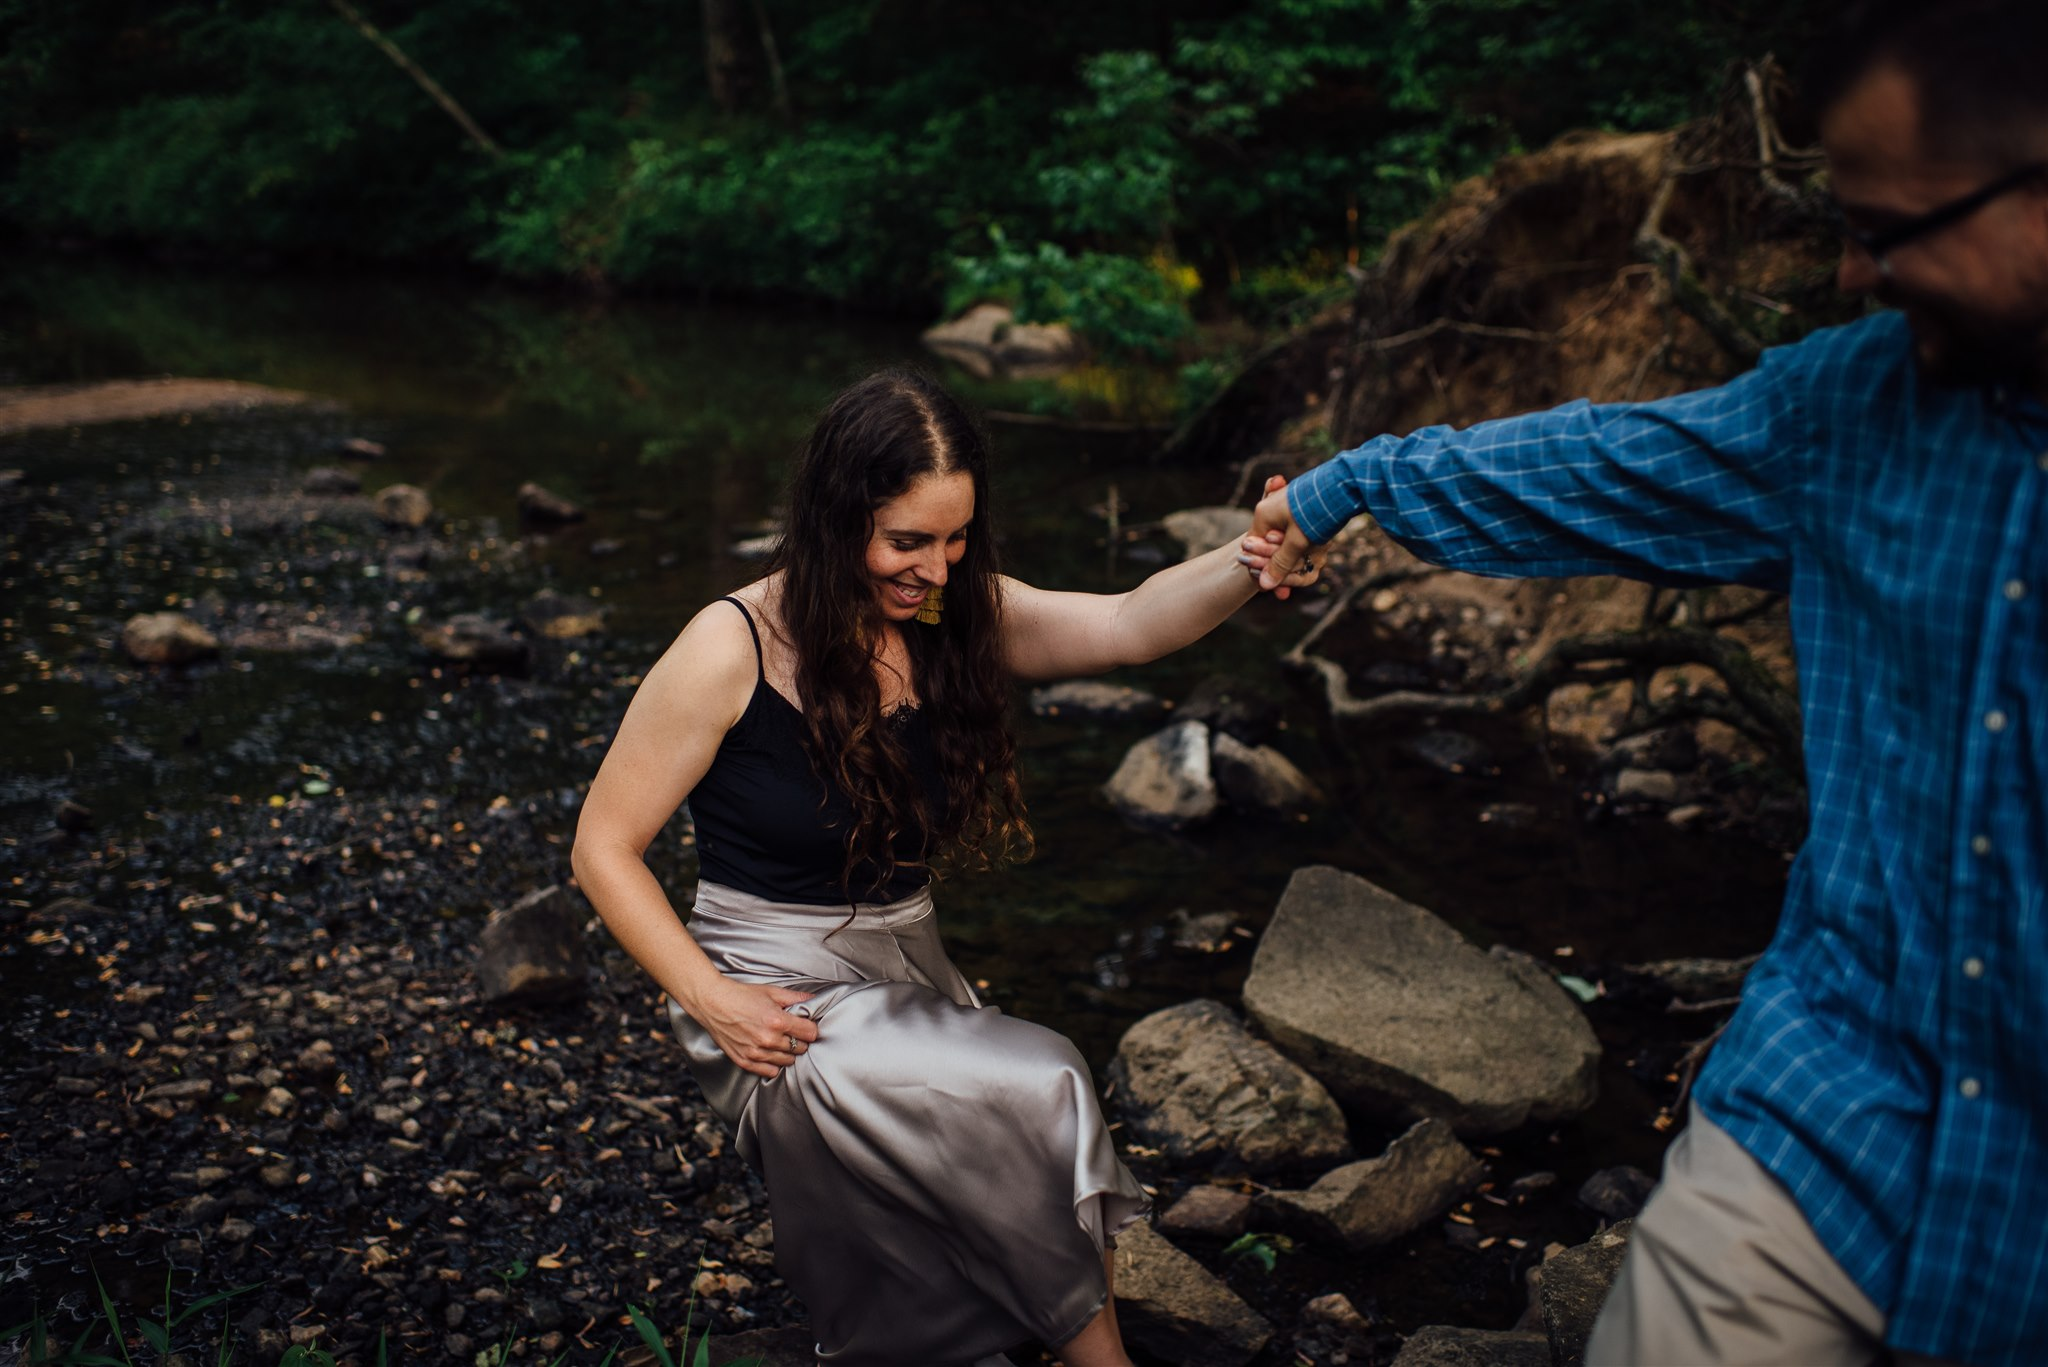 Umstead Engagement Session - Raleigh Engagement Photographer -  North Carolina Wedding Photographer - Raleigh Wedding Photographer